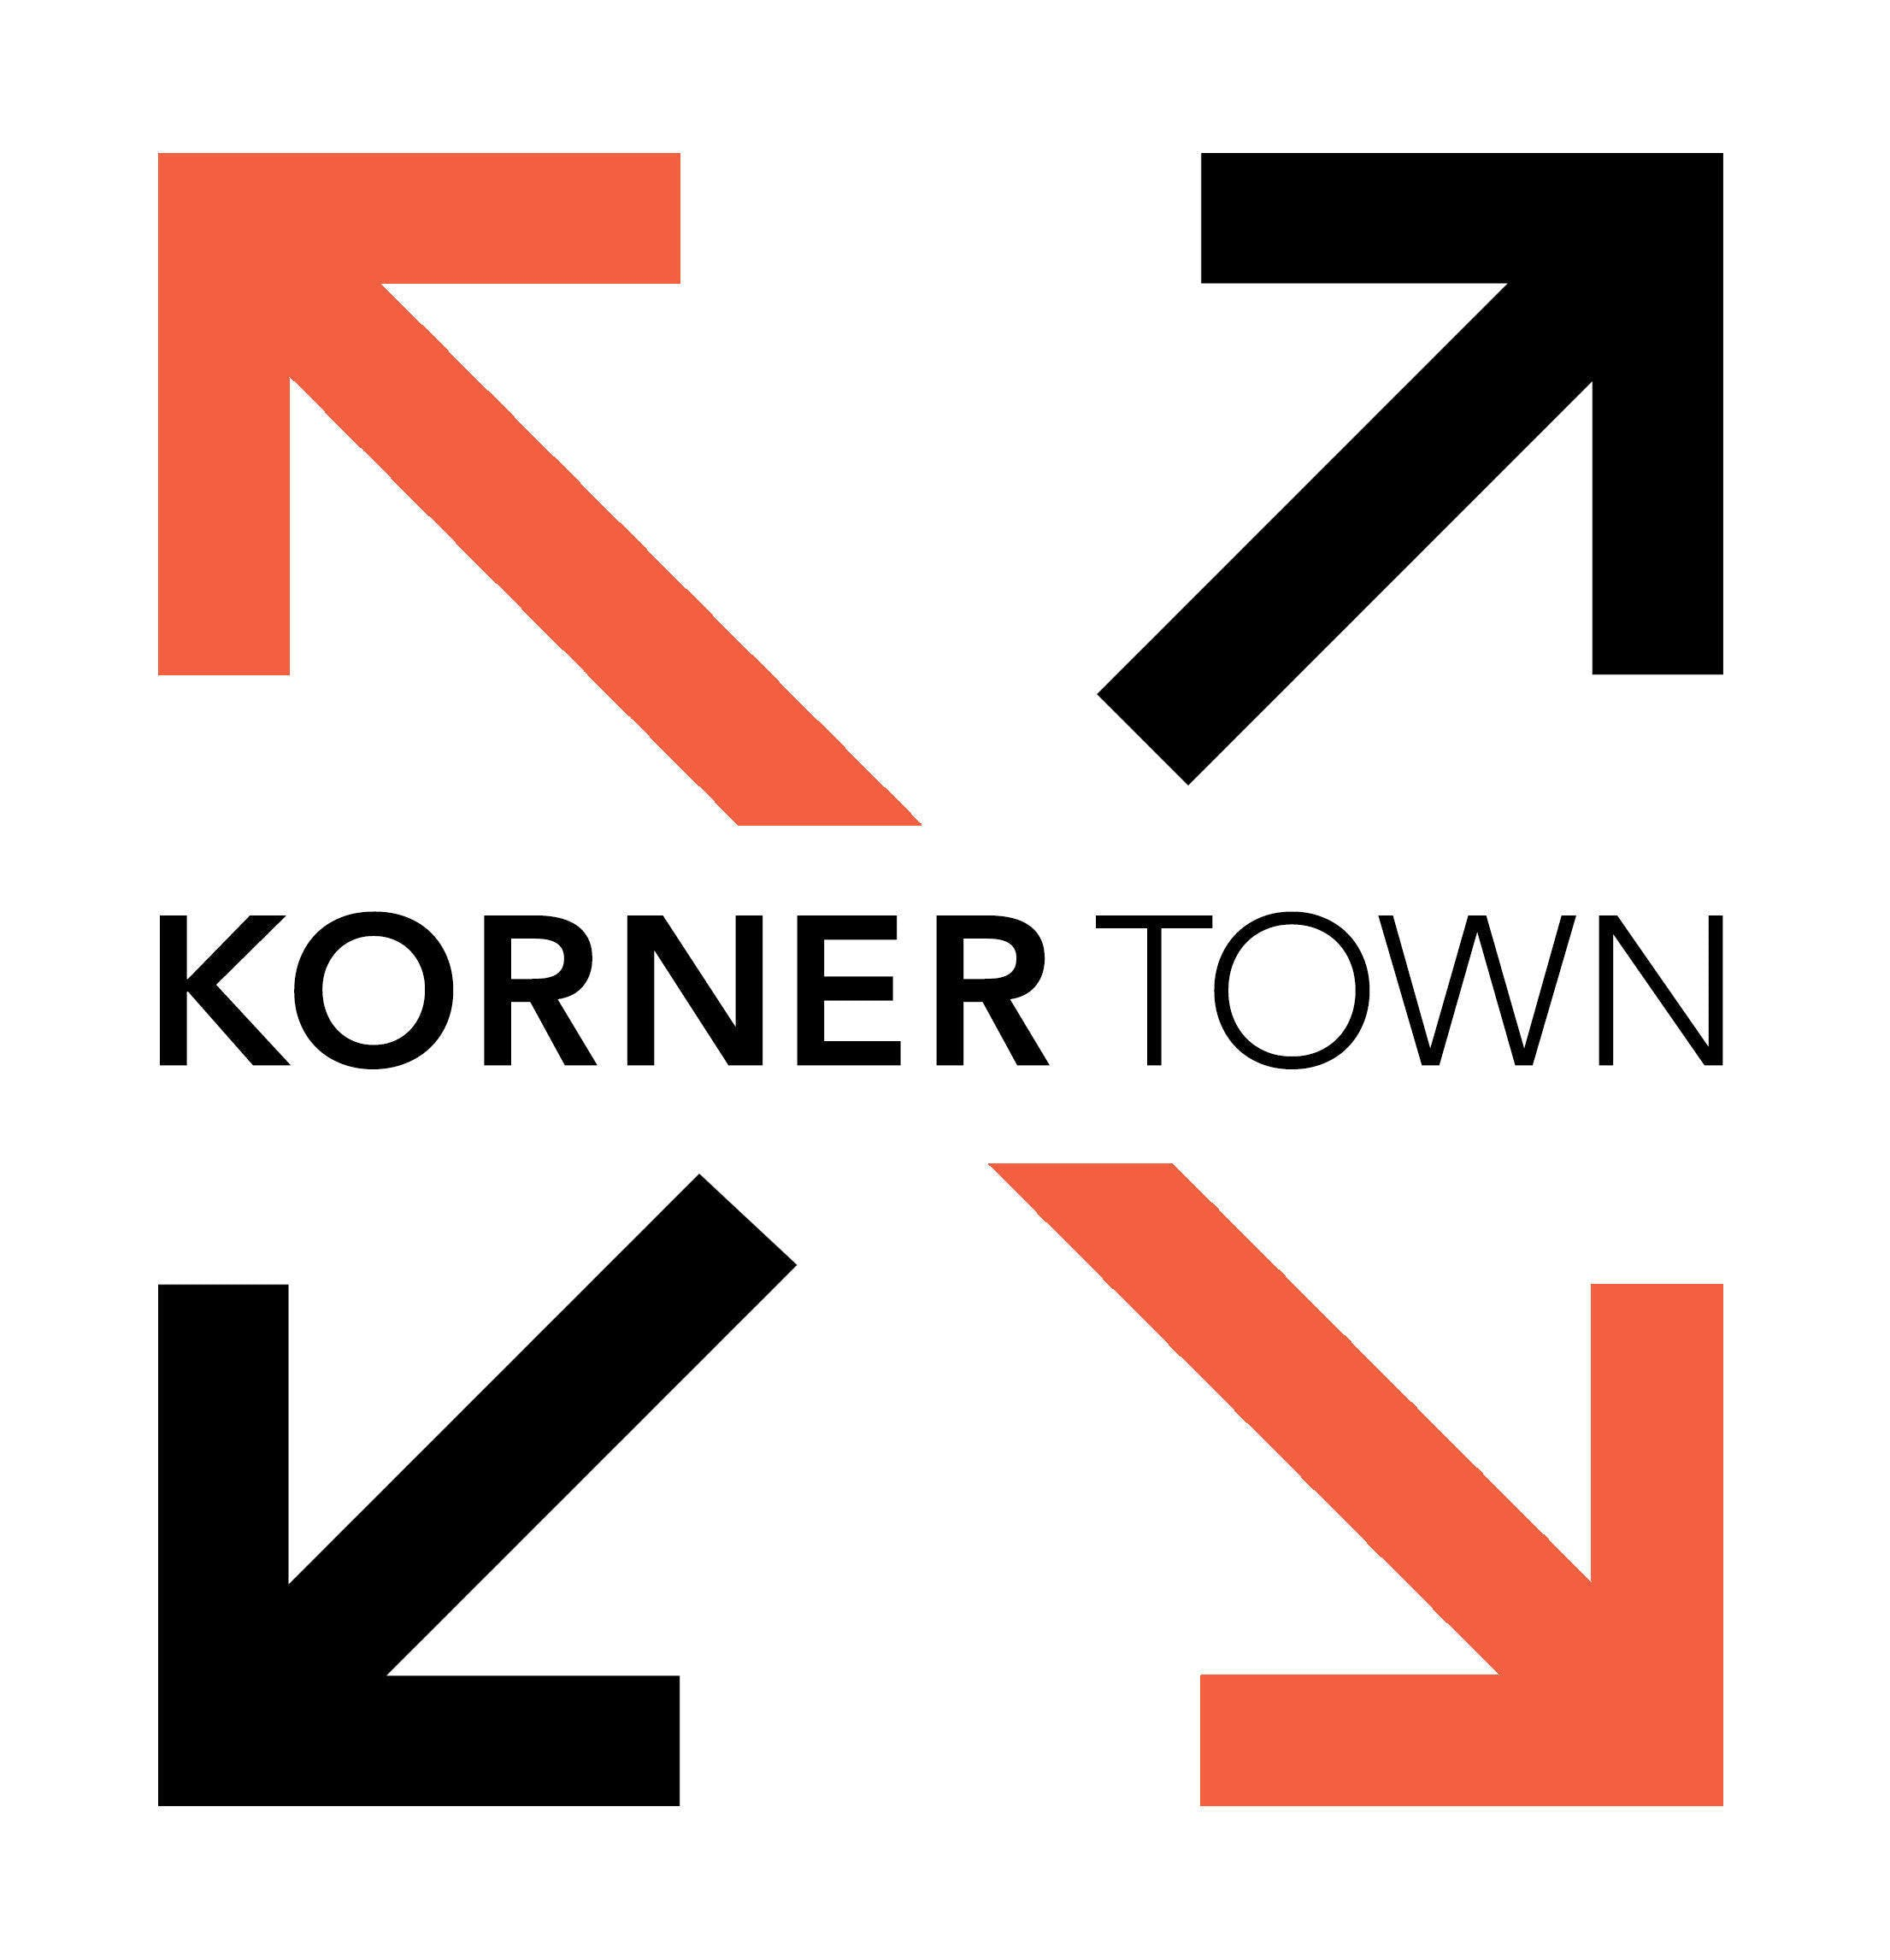 Korner Town - Medical Marijuana Doctors - Cannabizme.com